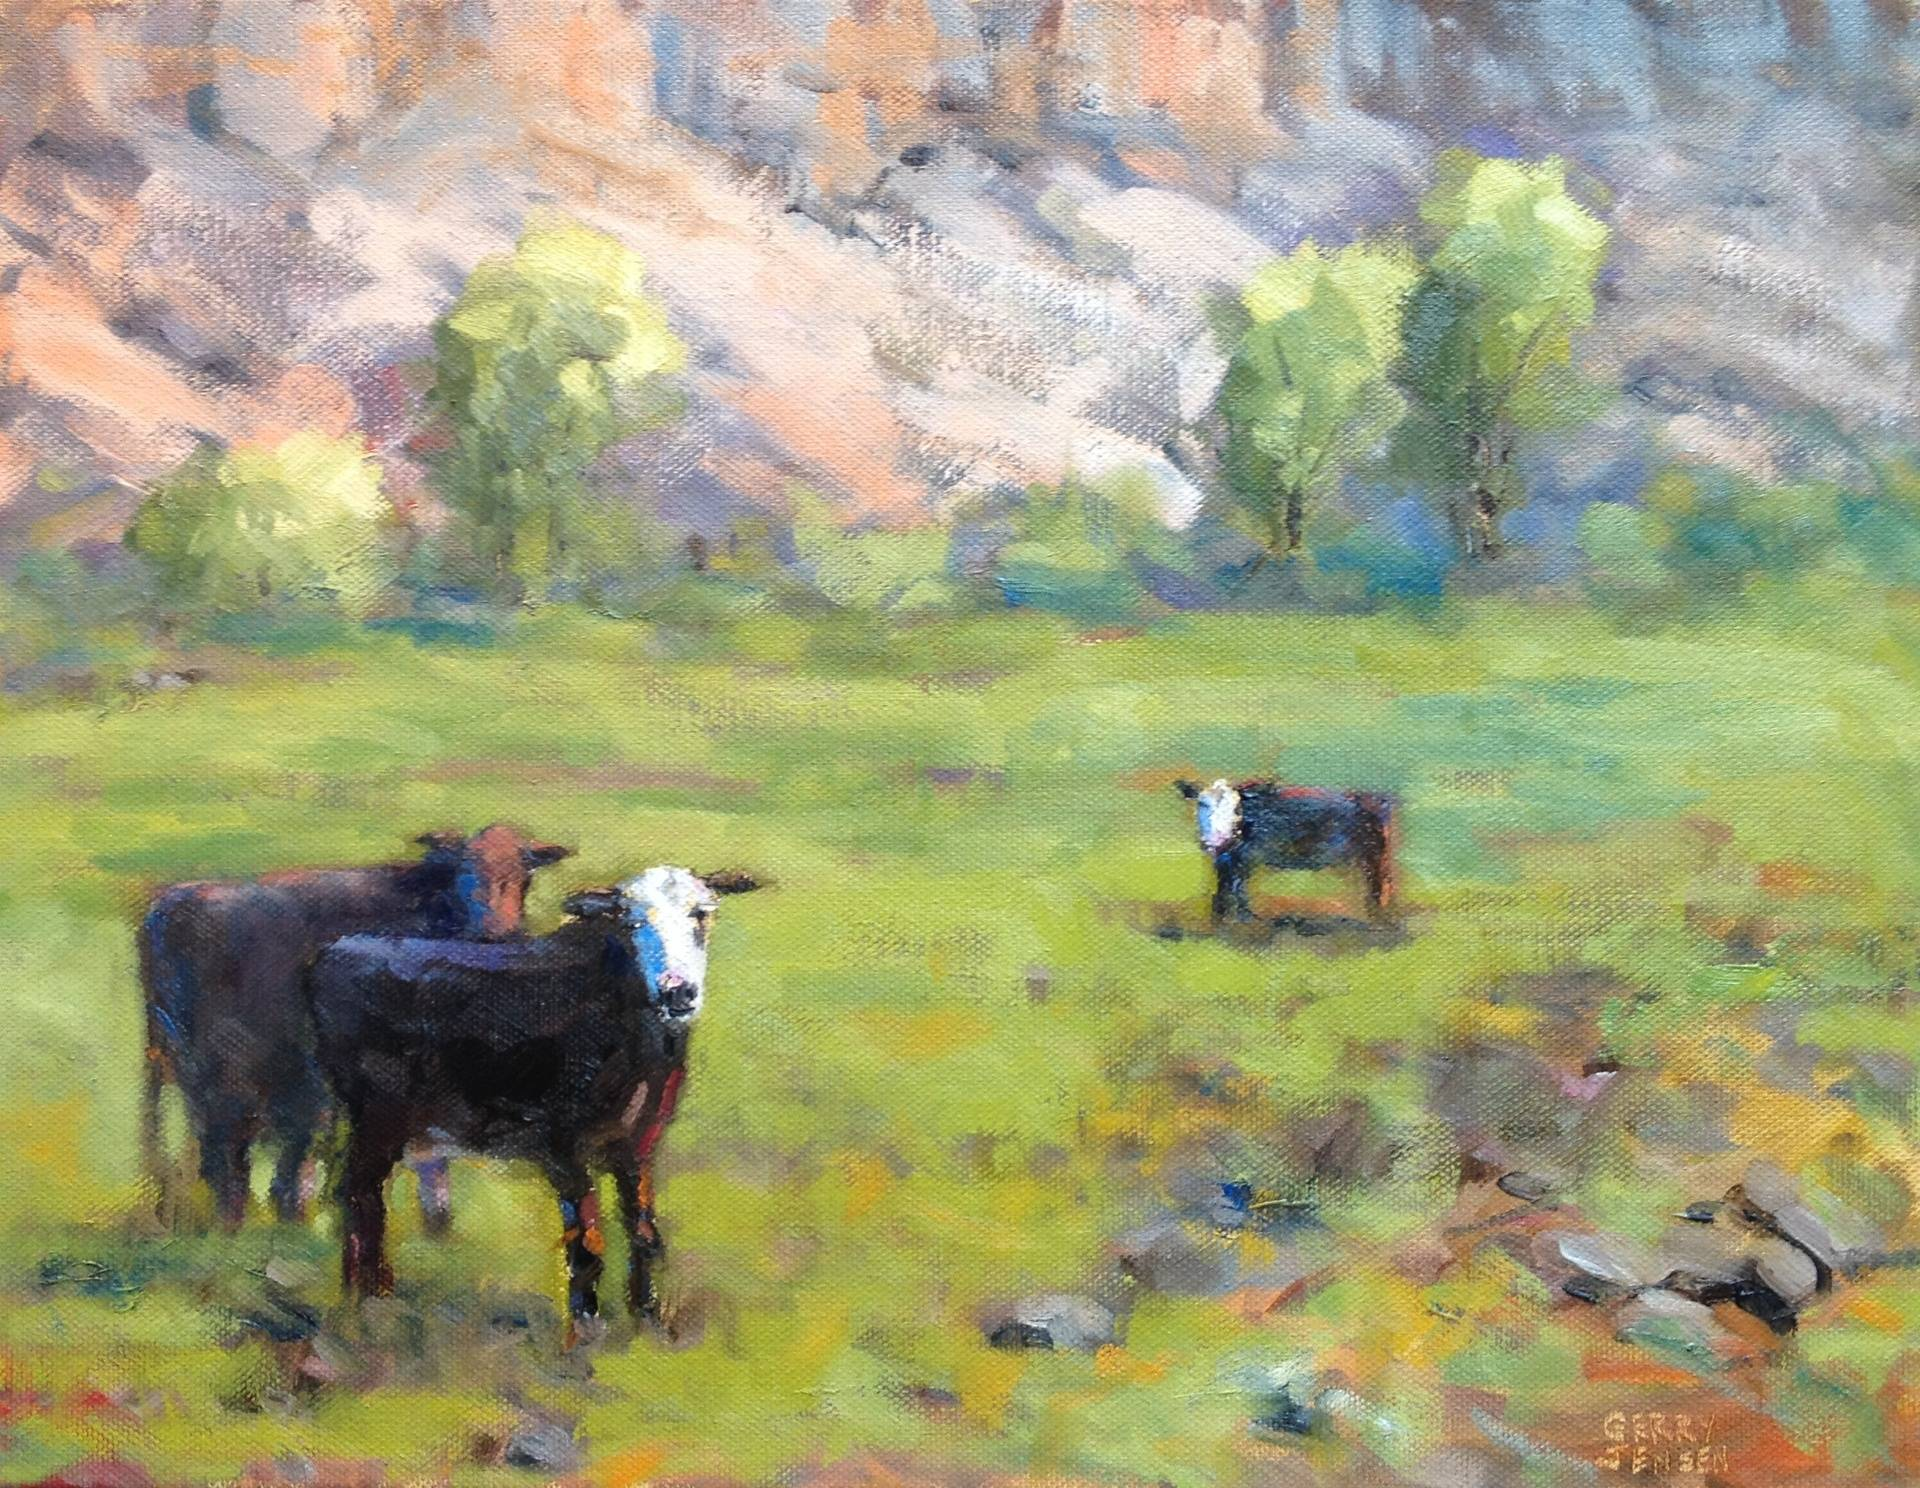 Cows in Escalante Canyon